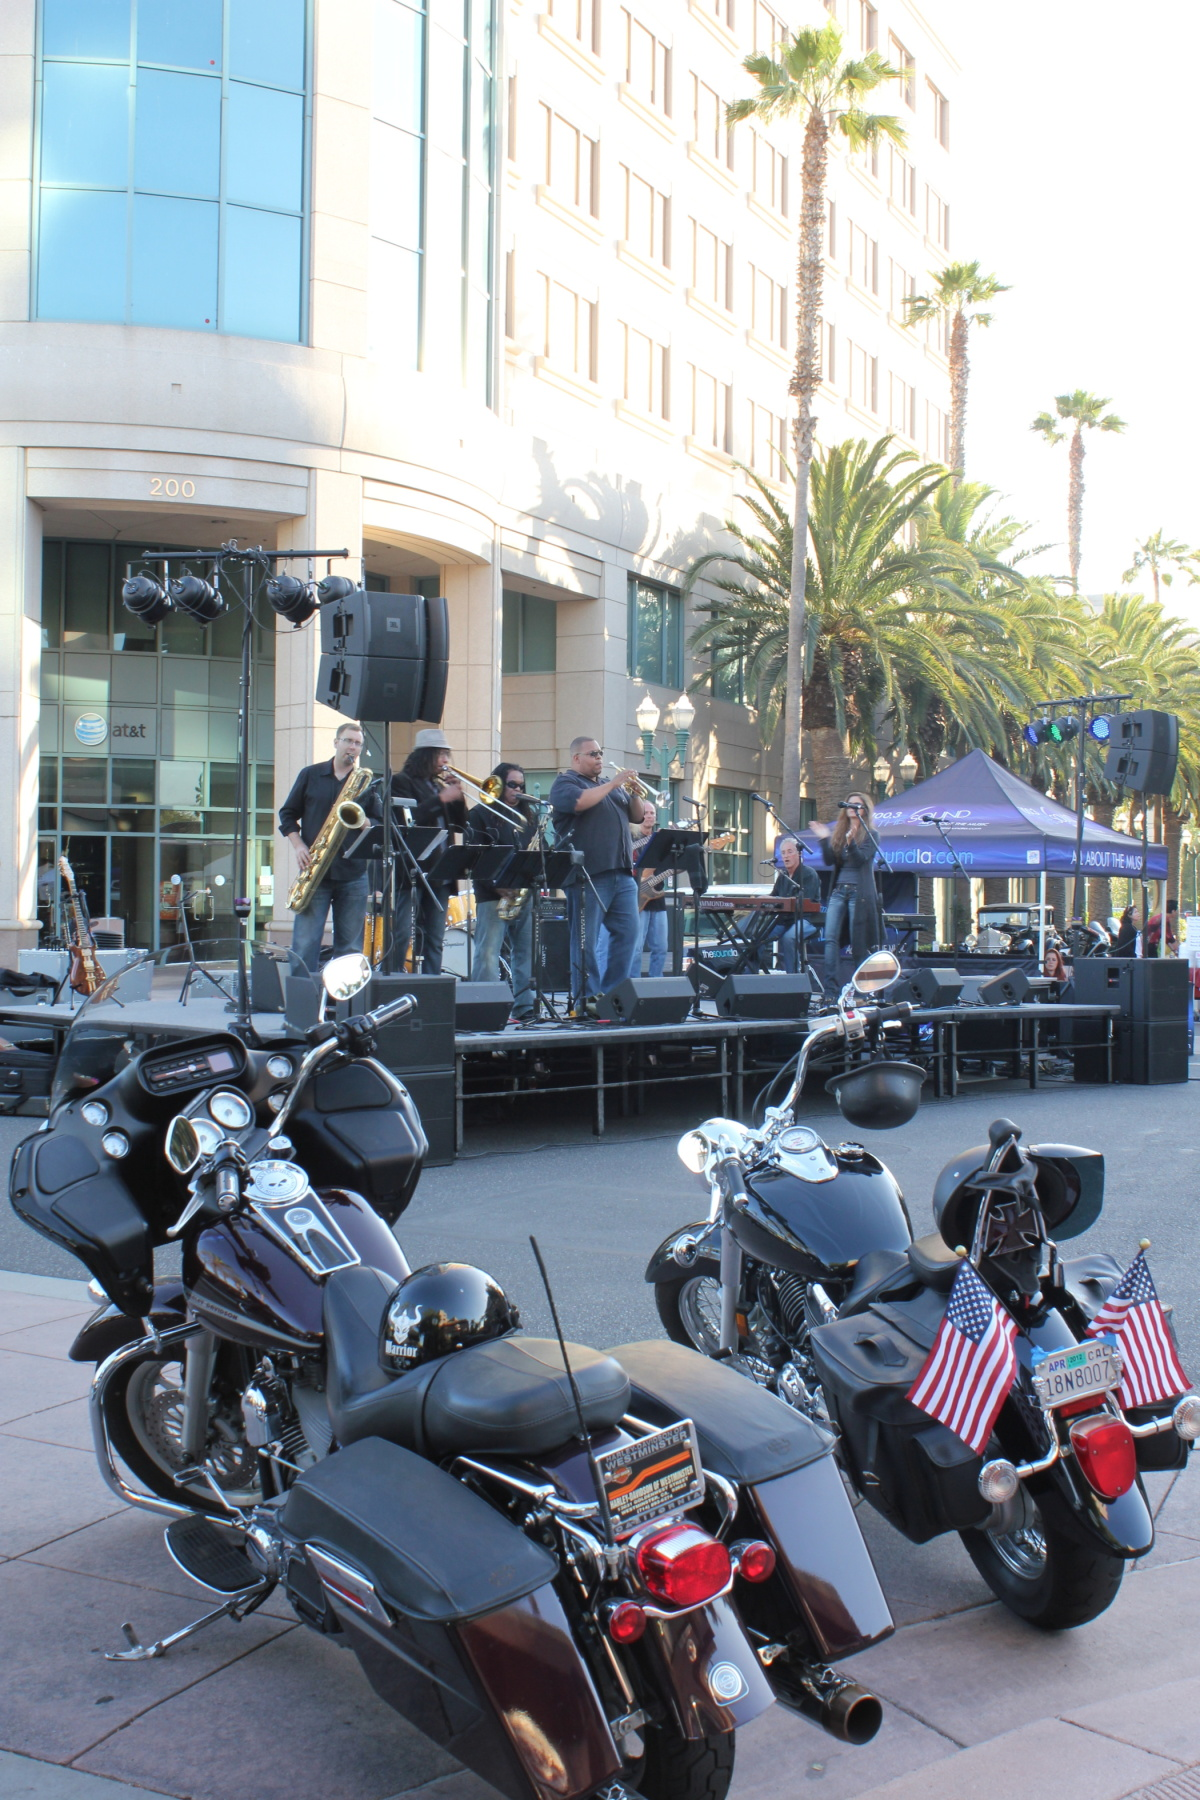 Blues Bettie - Rumble and Rock the City Block. Anaheim, CA 2011